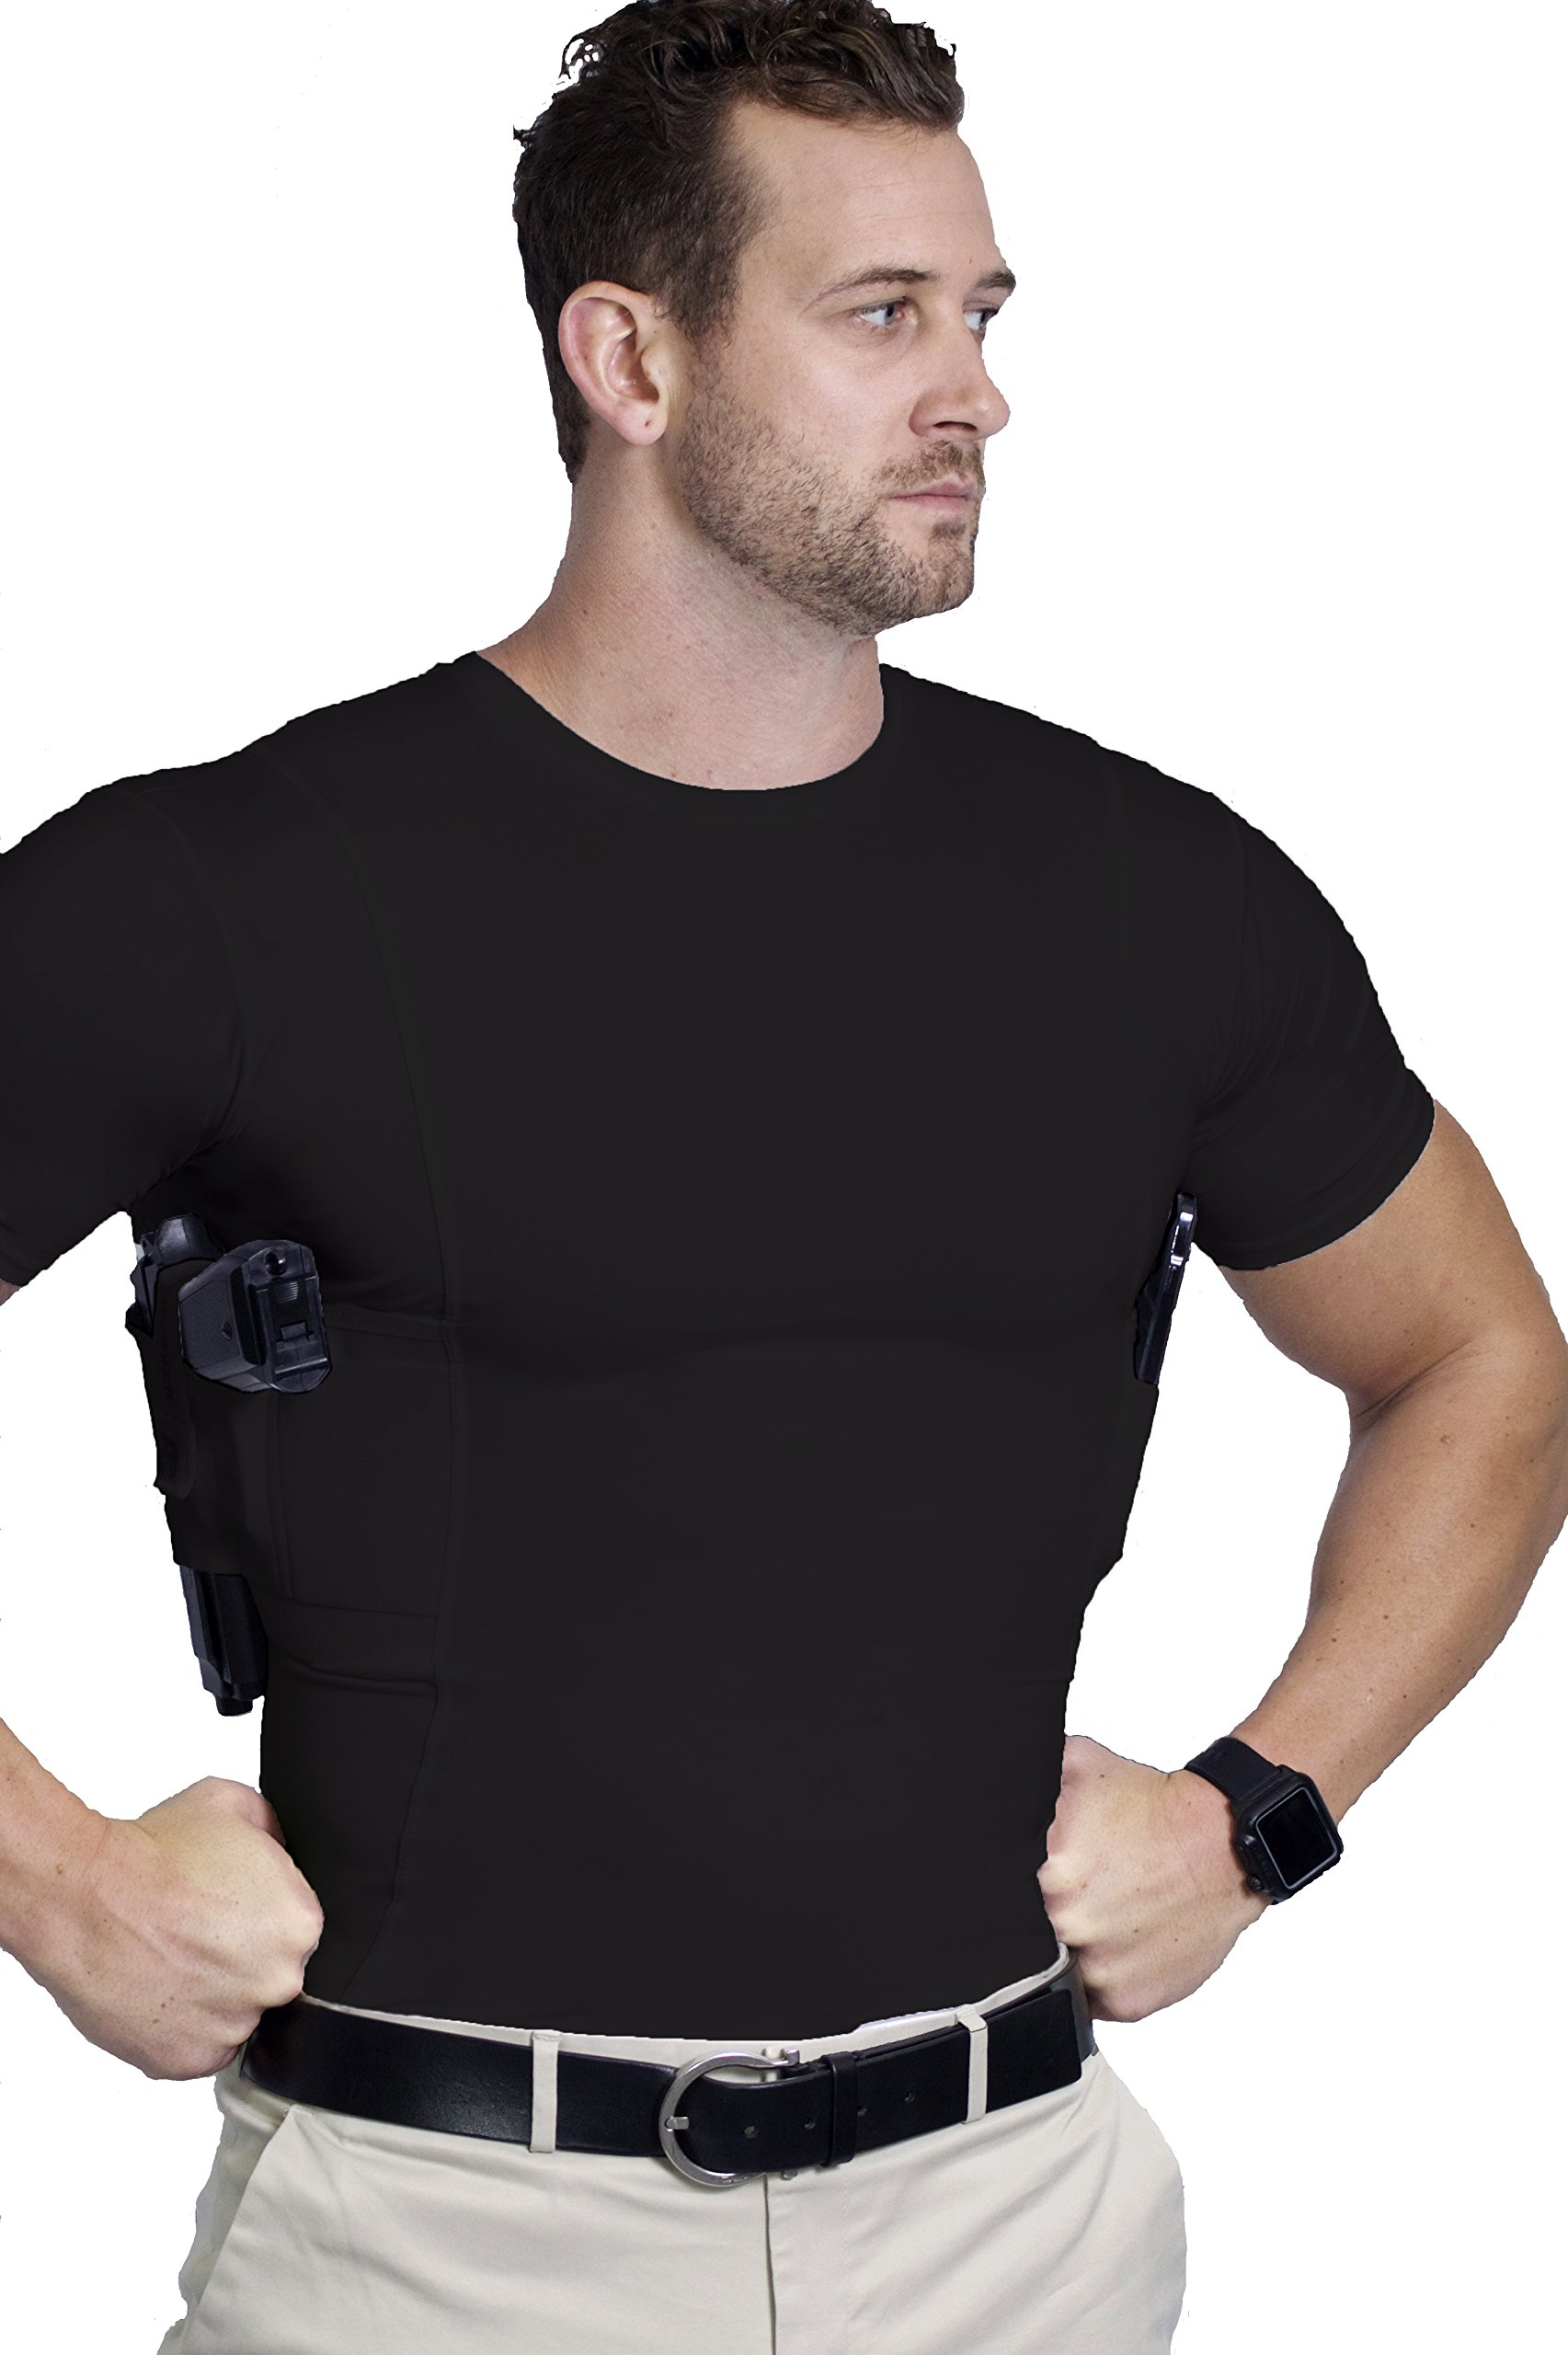 AC Undercover Concealed Carry Crew Neck Tshirt/CCW Tactical Clothing/Concealed Clothing REF. 511 (Black) (Black 3-Pack, X-Large) by AC Undercover (Image #2)